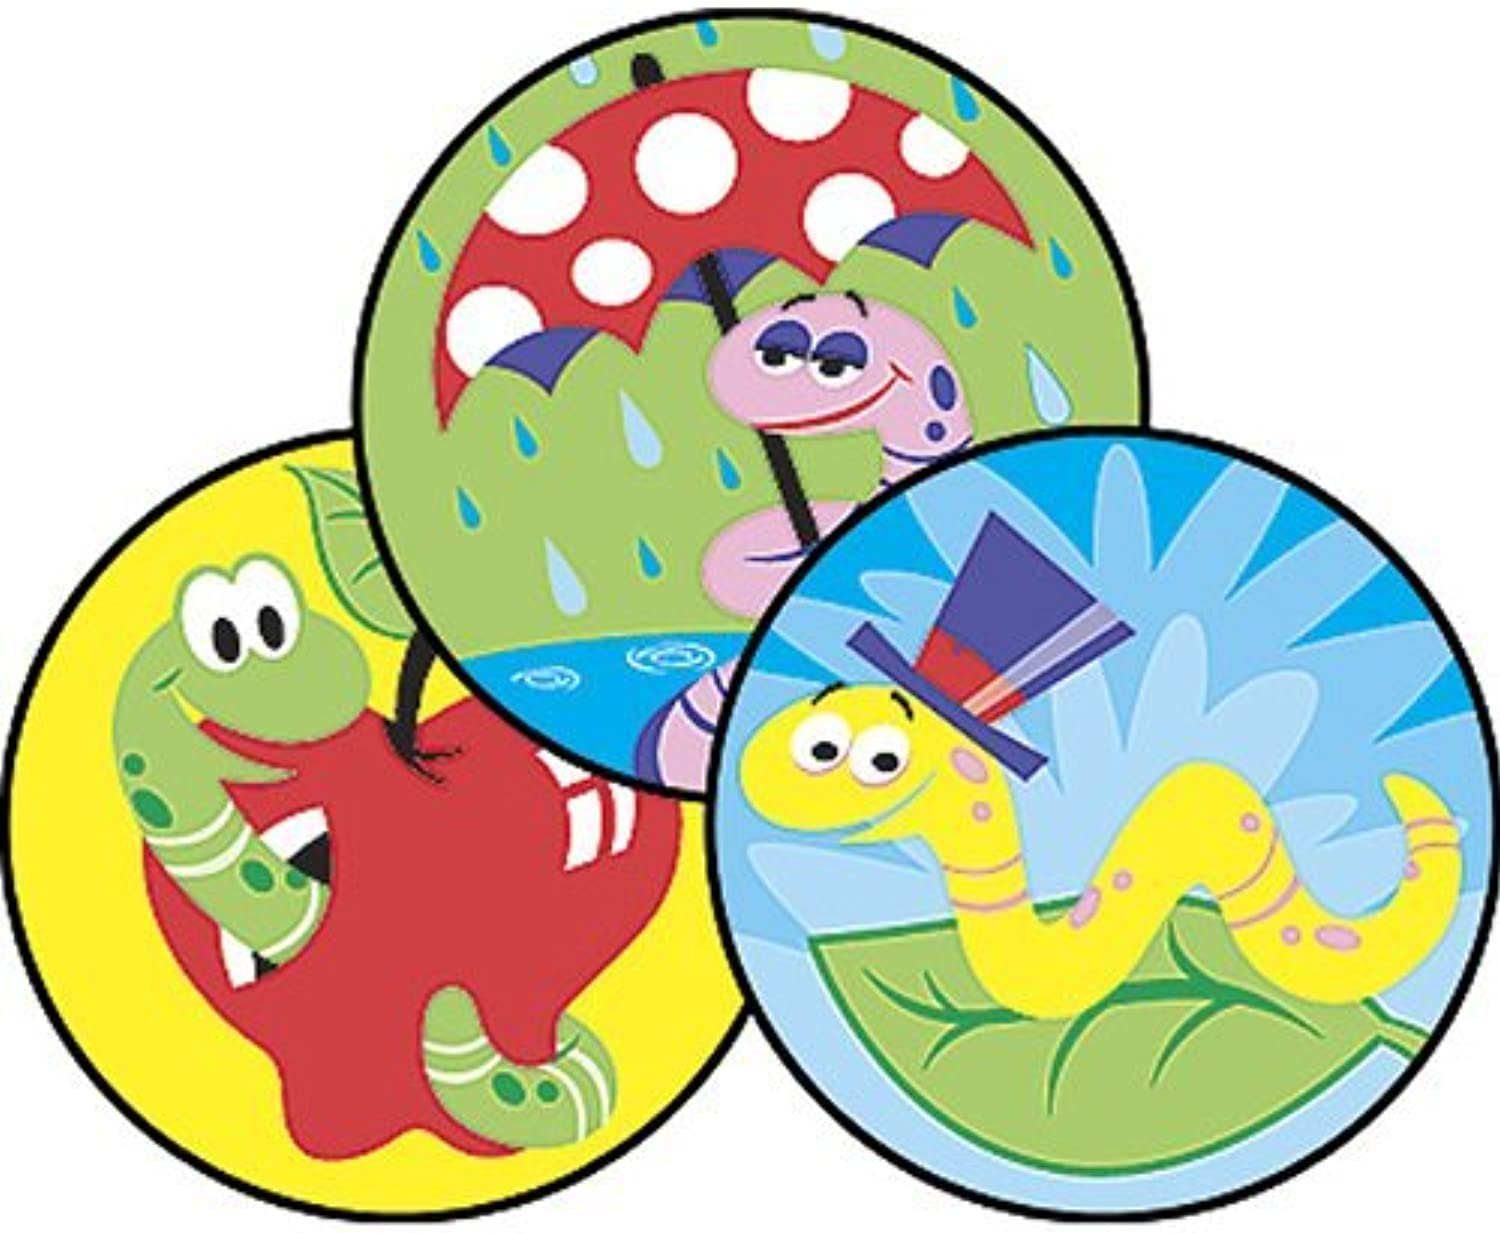 60 x Wiggly Worms Stinky Stickers (Dirt Scented) by TREND ENTERPRISES INC.